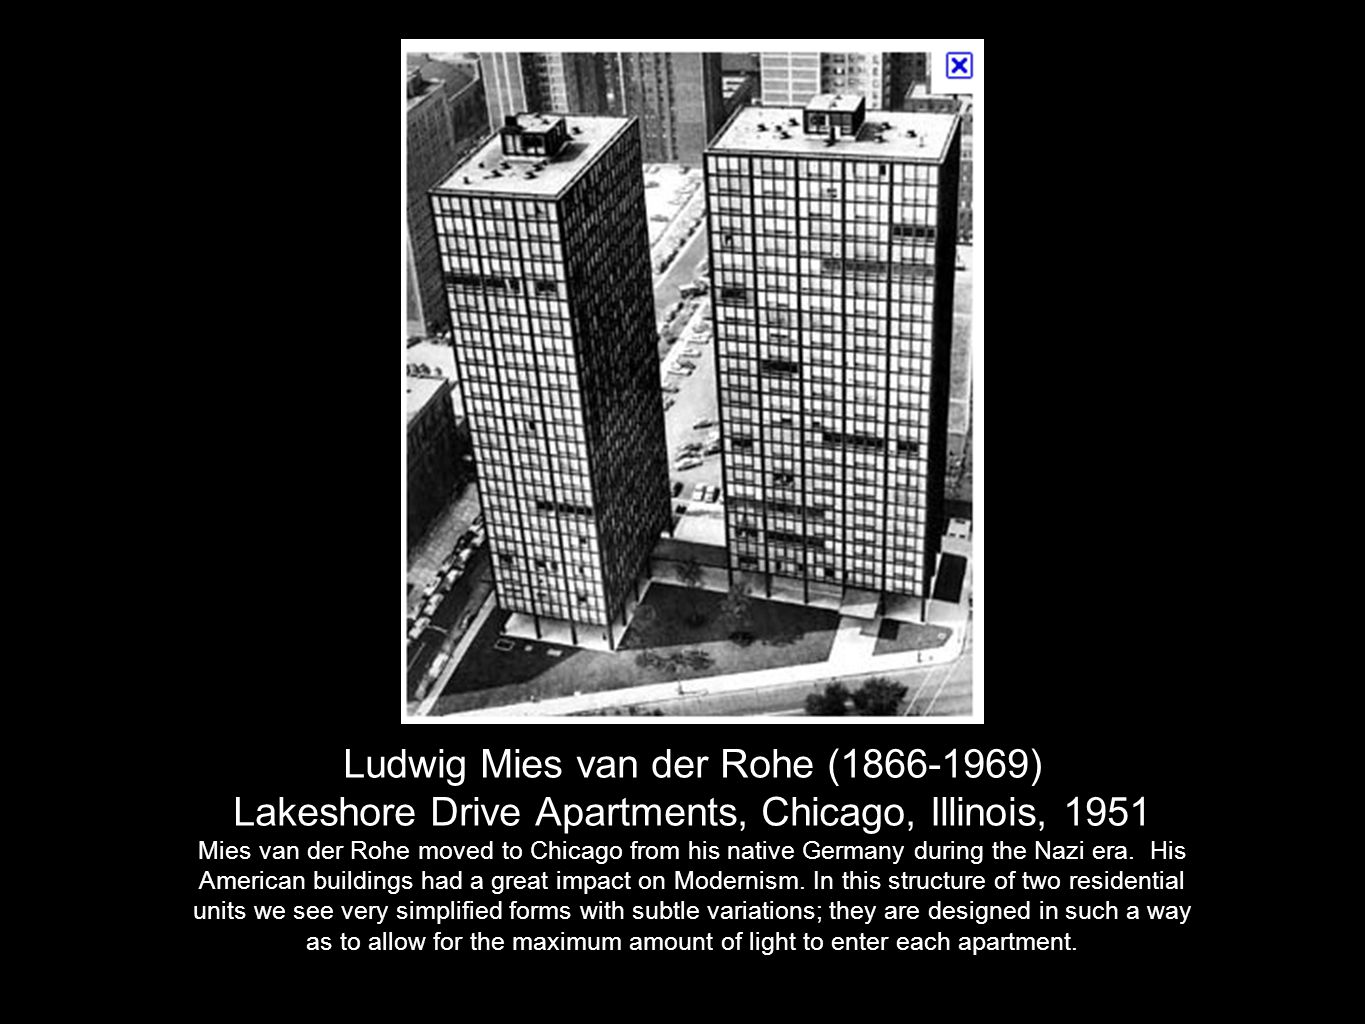 Ludwig Mies van der Rohe (1866-1969) Lakeshore Drive Apartments, Chicago, Illinois, 1951 Mies van der Rohe moved to Chicago from his native Germany during the Nazi era.